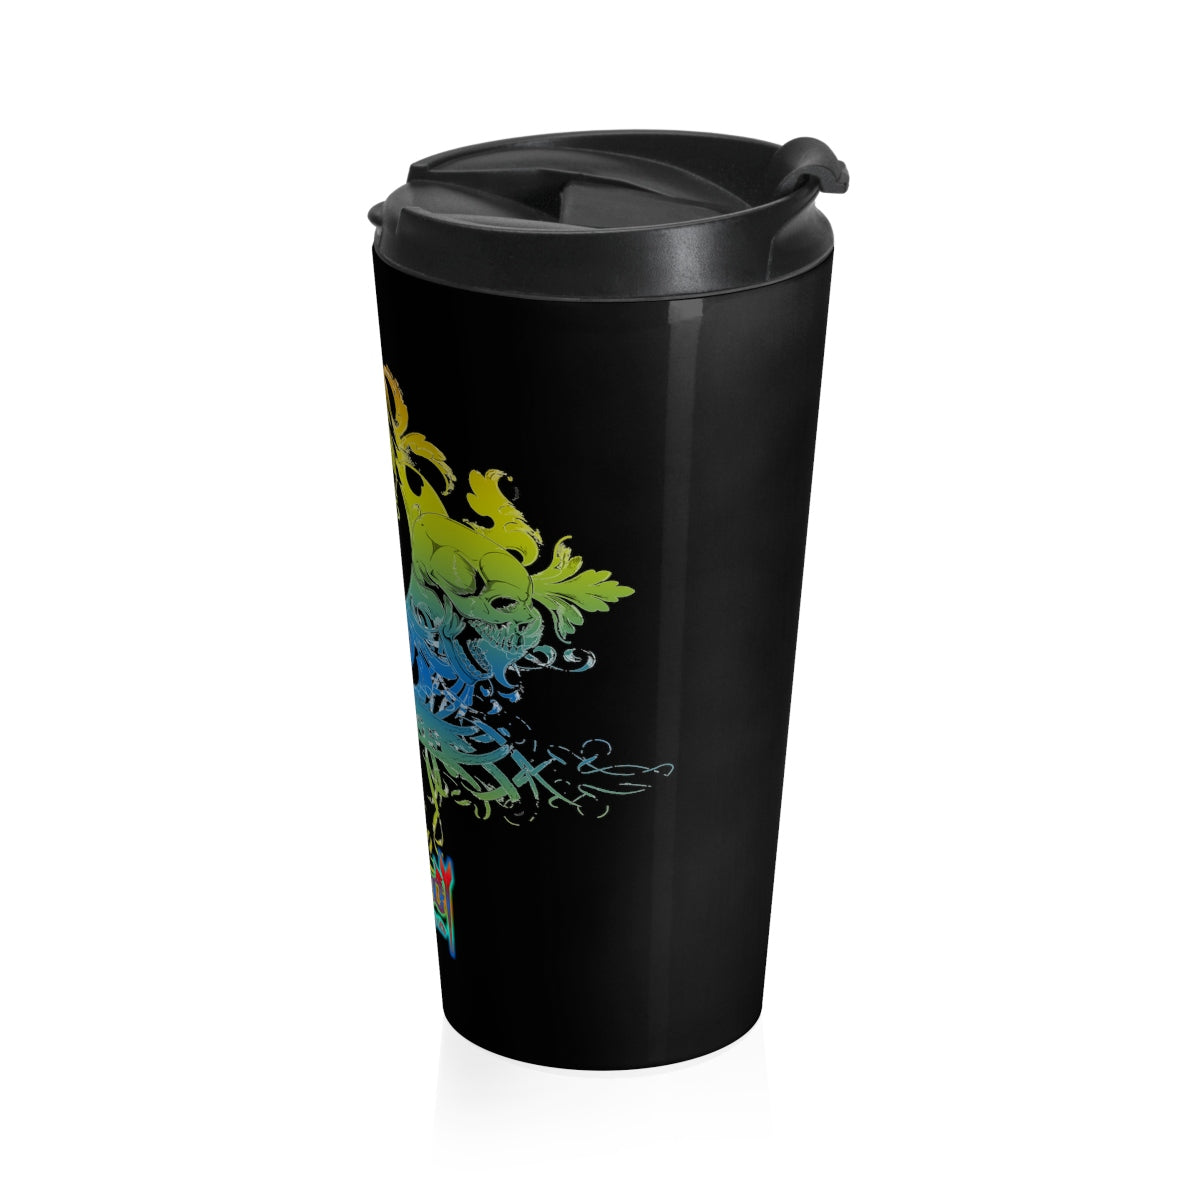 Fearless 2 /Stainless Steel Travel Mug